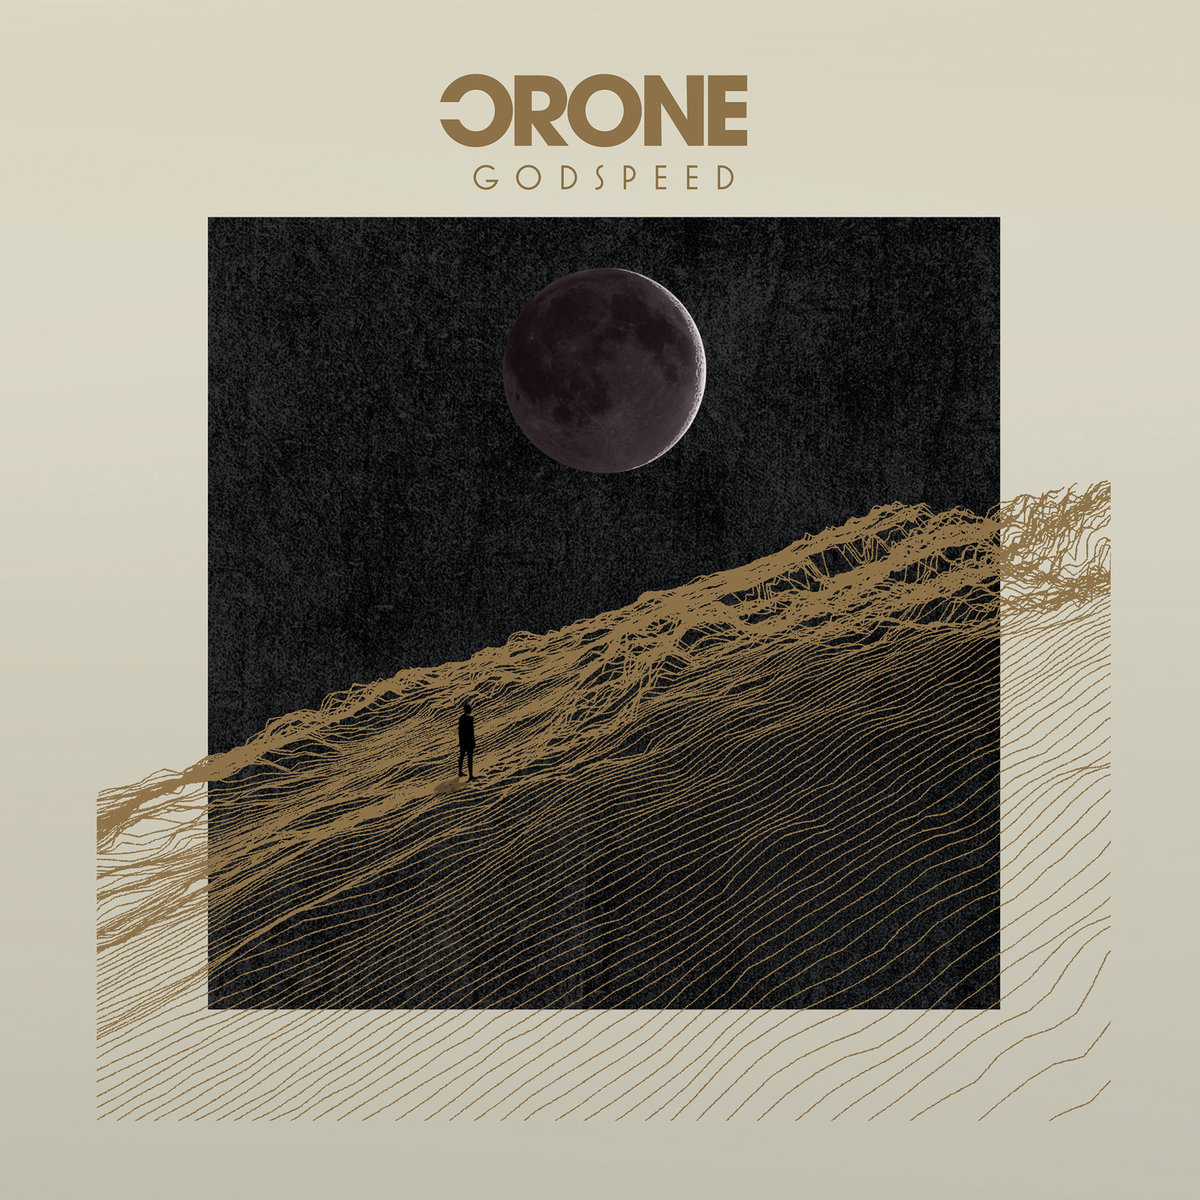 18. Crone - Godspeed - Crone show depth and flexibility in their songwriting ability on Godspeed and fuse grunge, progressive and alternative rock with metal elements. To give you an idea, there are parts which remind me of Pink Floyd, Alice In Chains, and David Bowie, but also parts that are similar to mid-era Katatonia or Opeth. A solid listen.